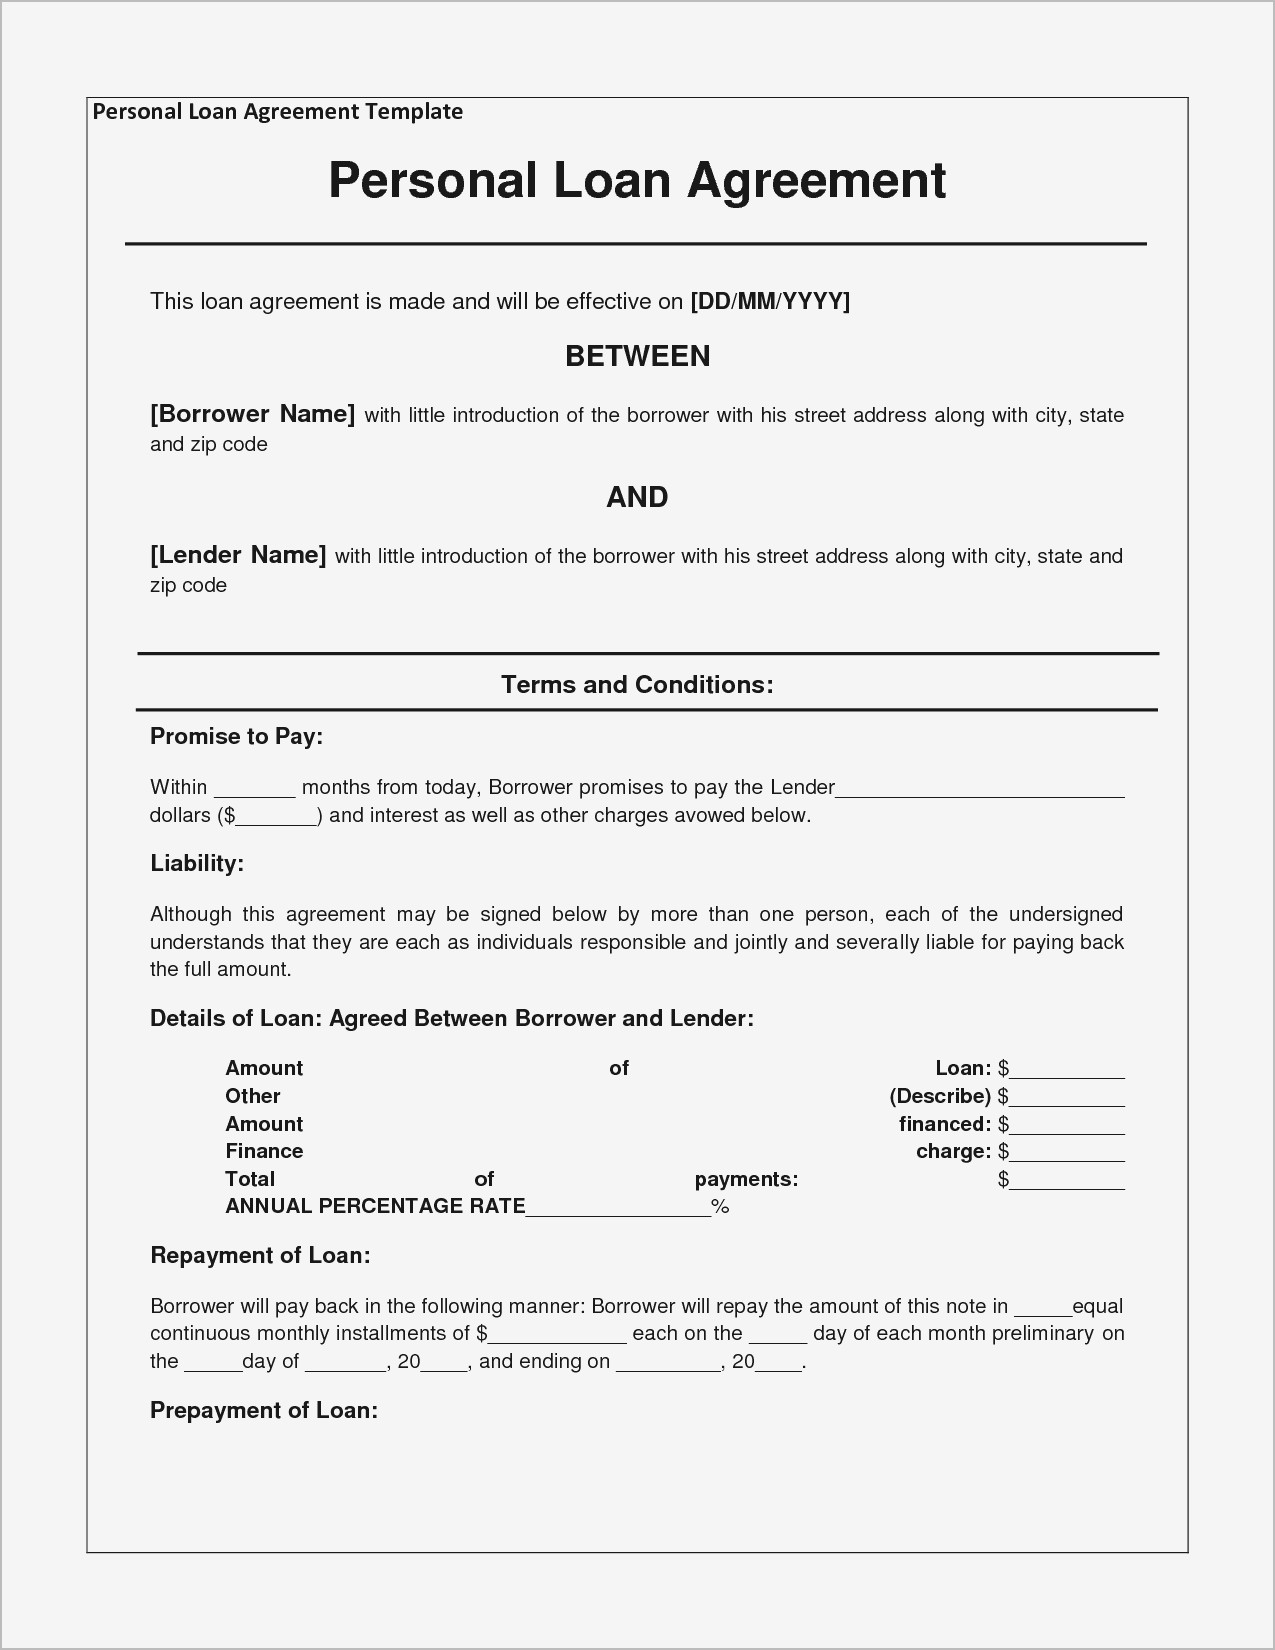 Contractor Agreement Form Awesome Free Personal Loan Agreement Form Template $1000 Approved In 2 Samples